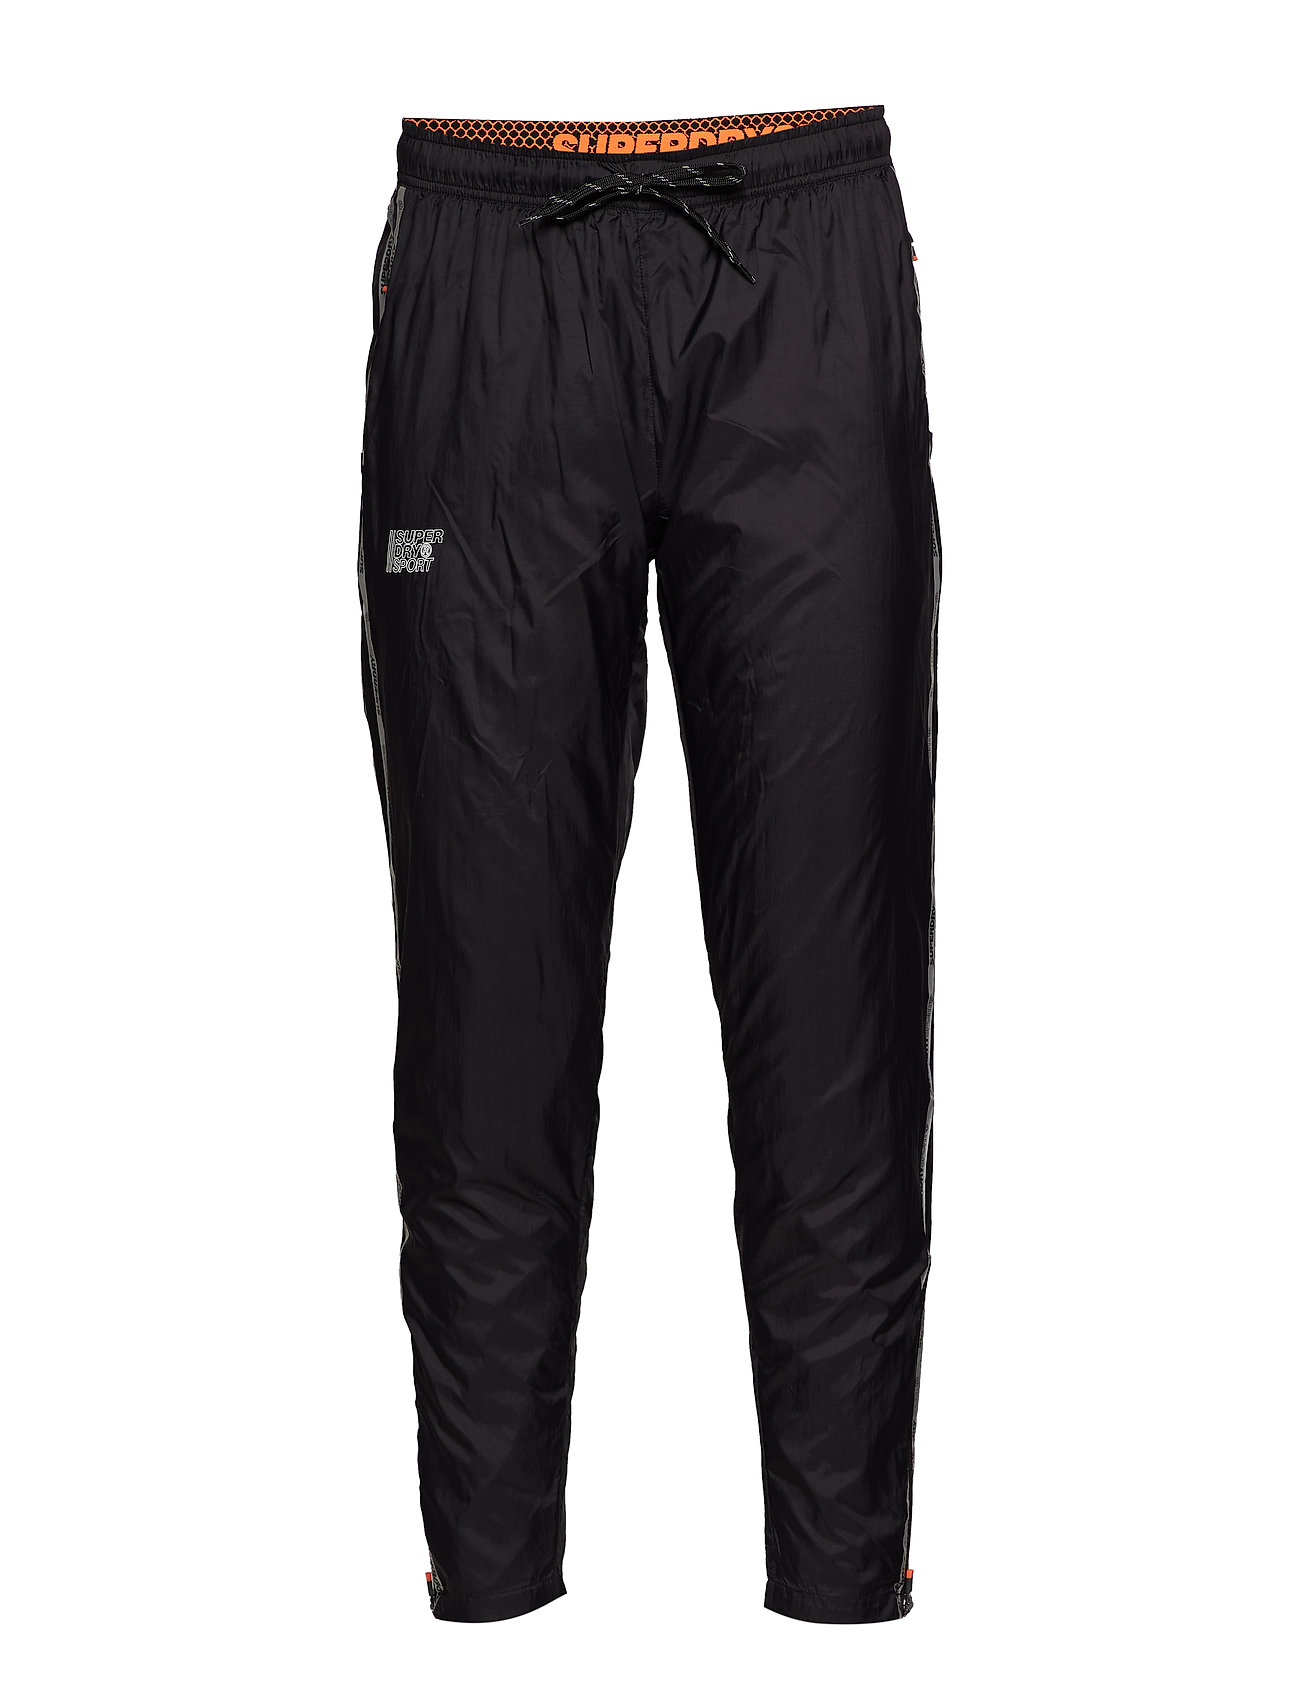 Superdry Sport ACTIVE TRAINING SHELL PANT - BLACK